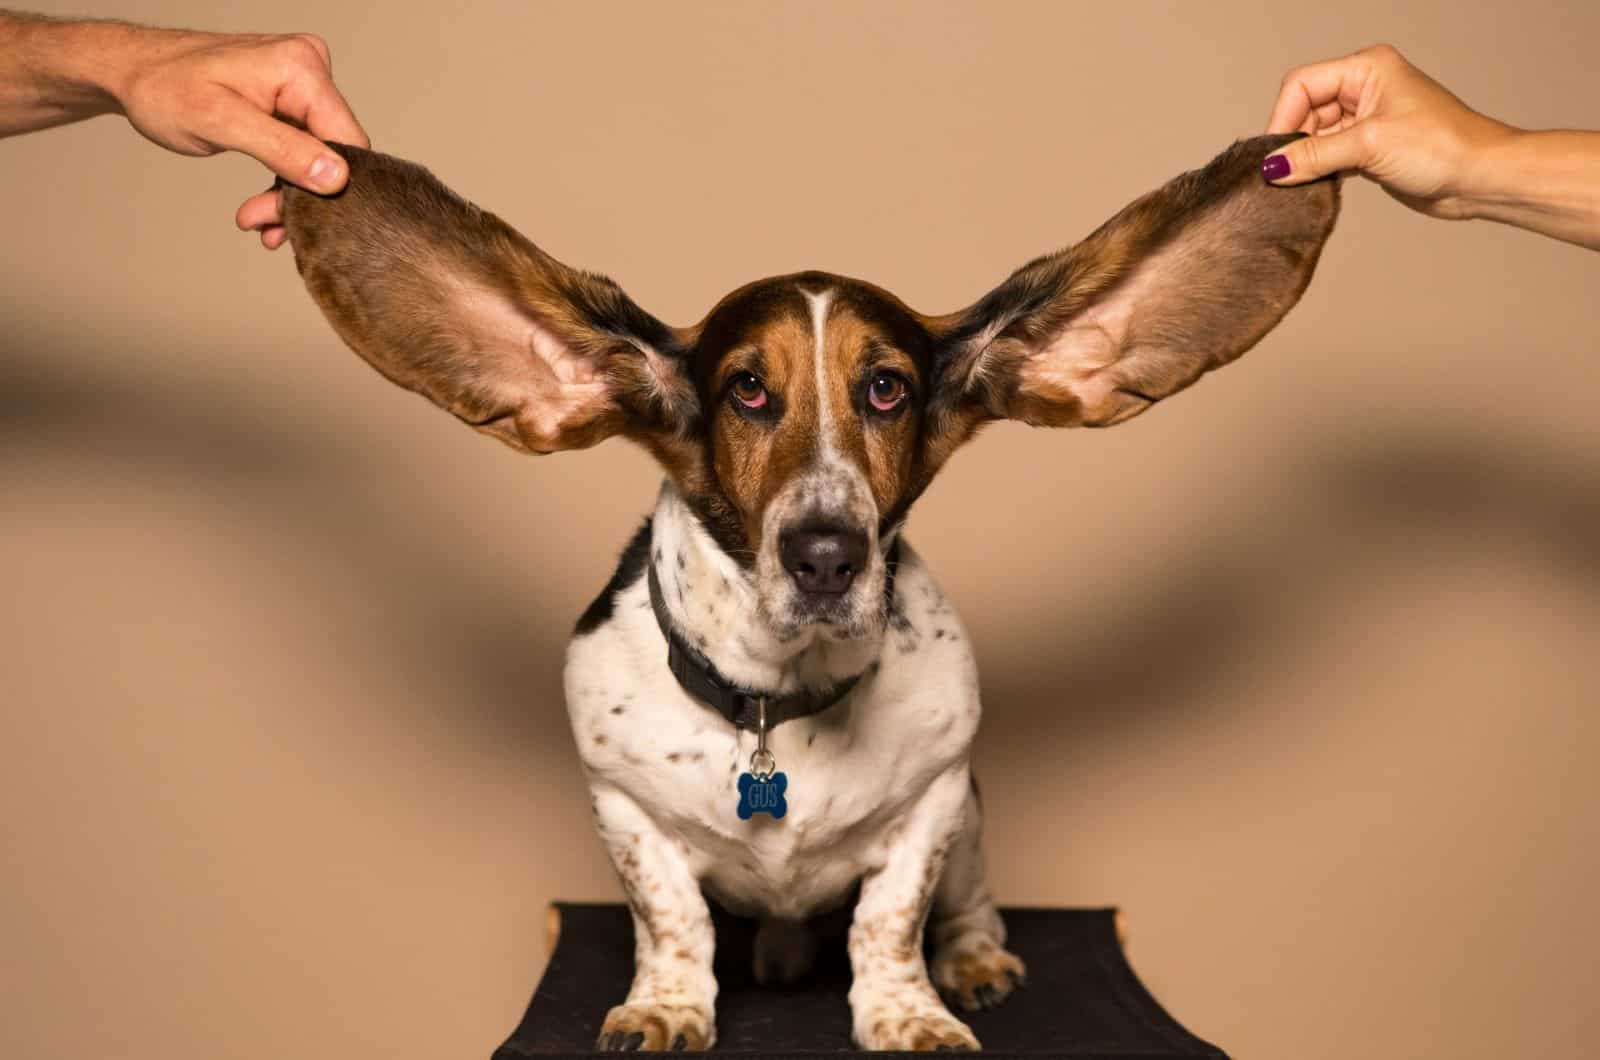 basset hound with spread ears